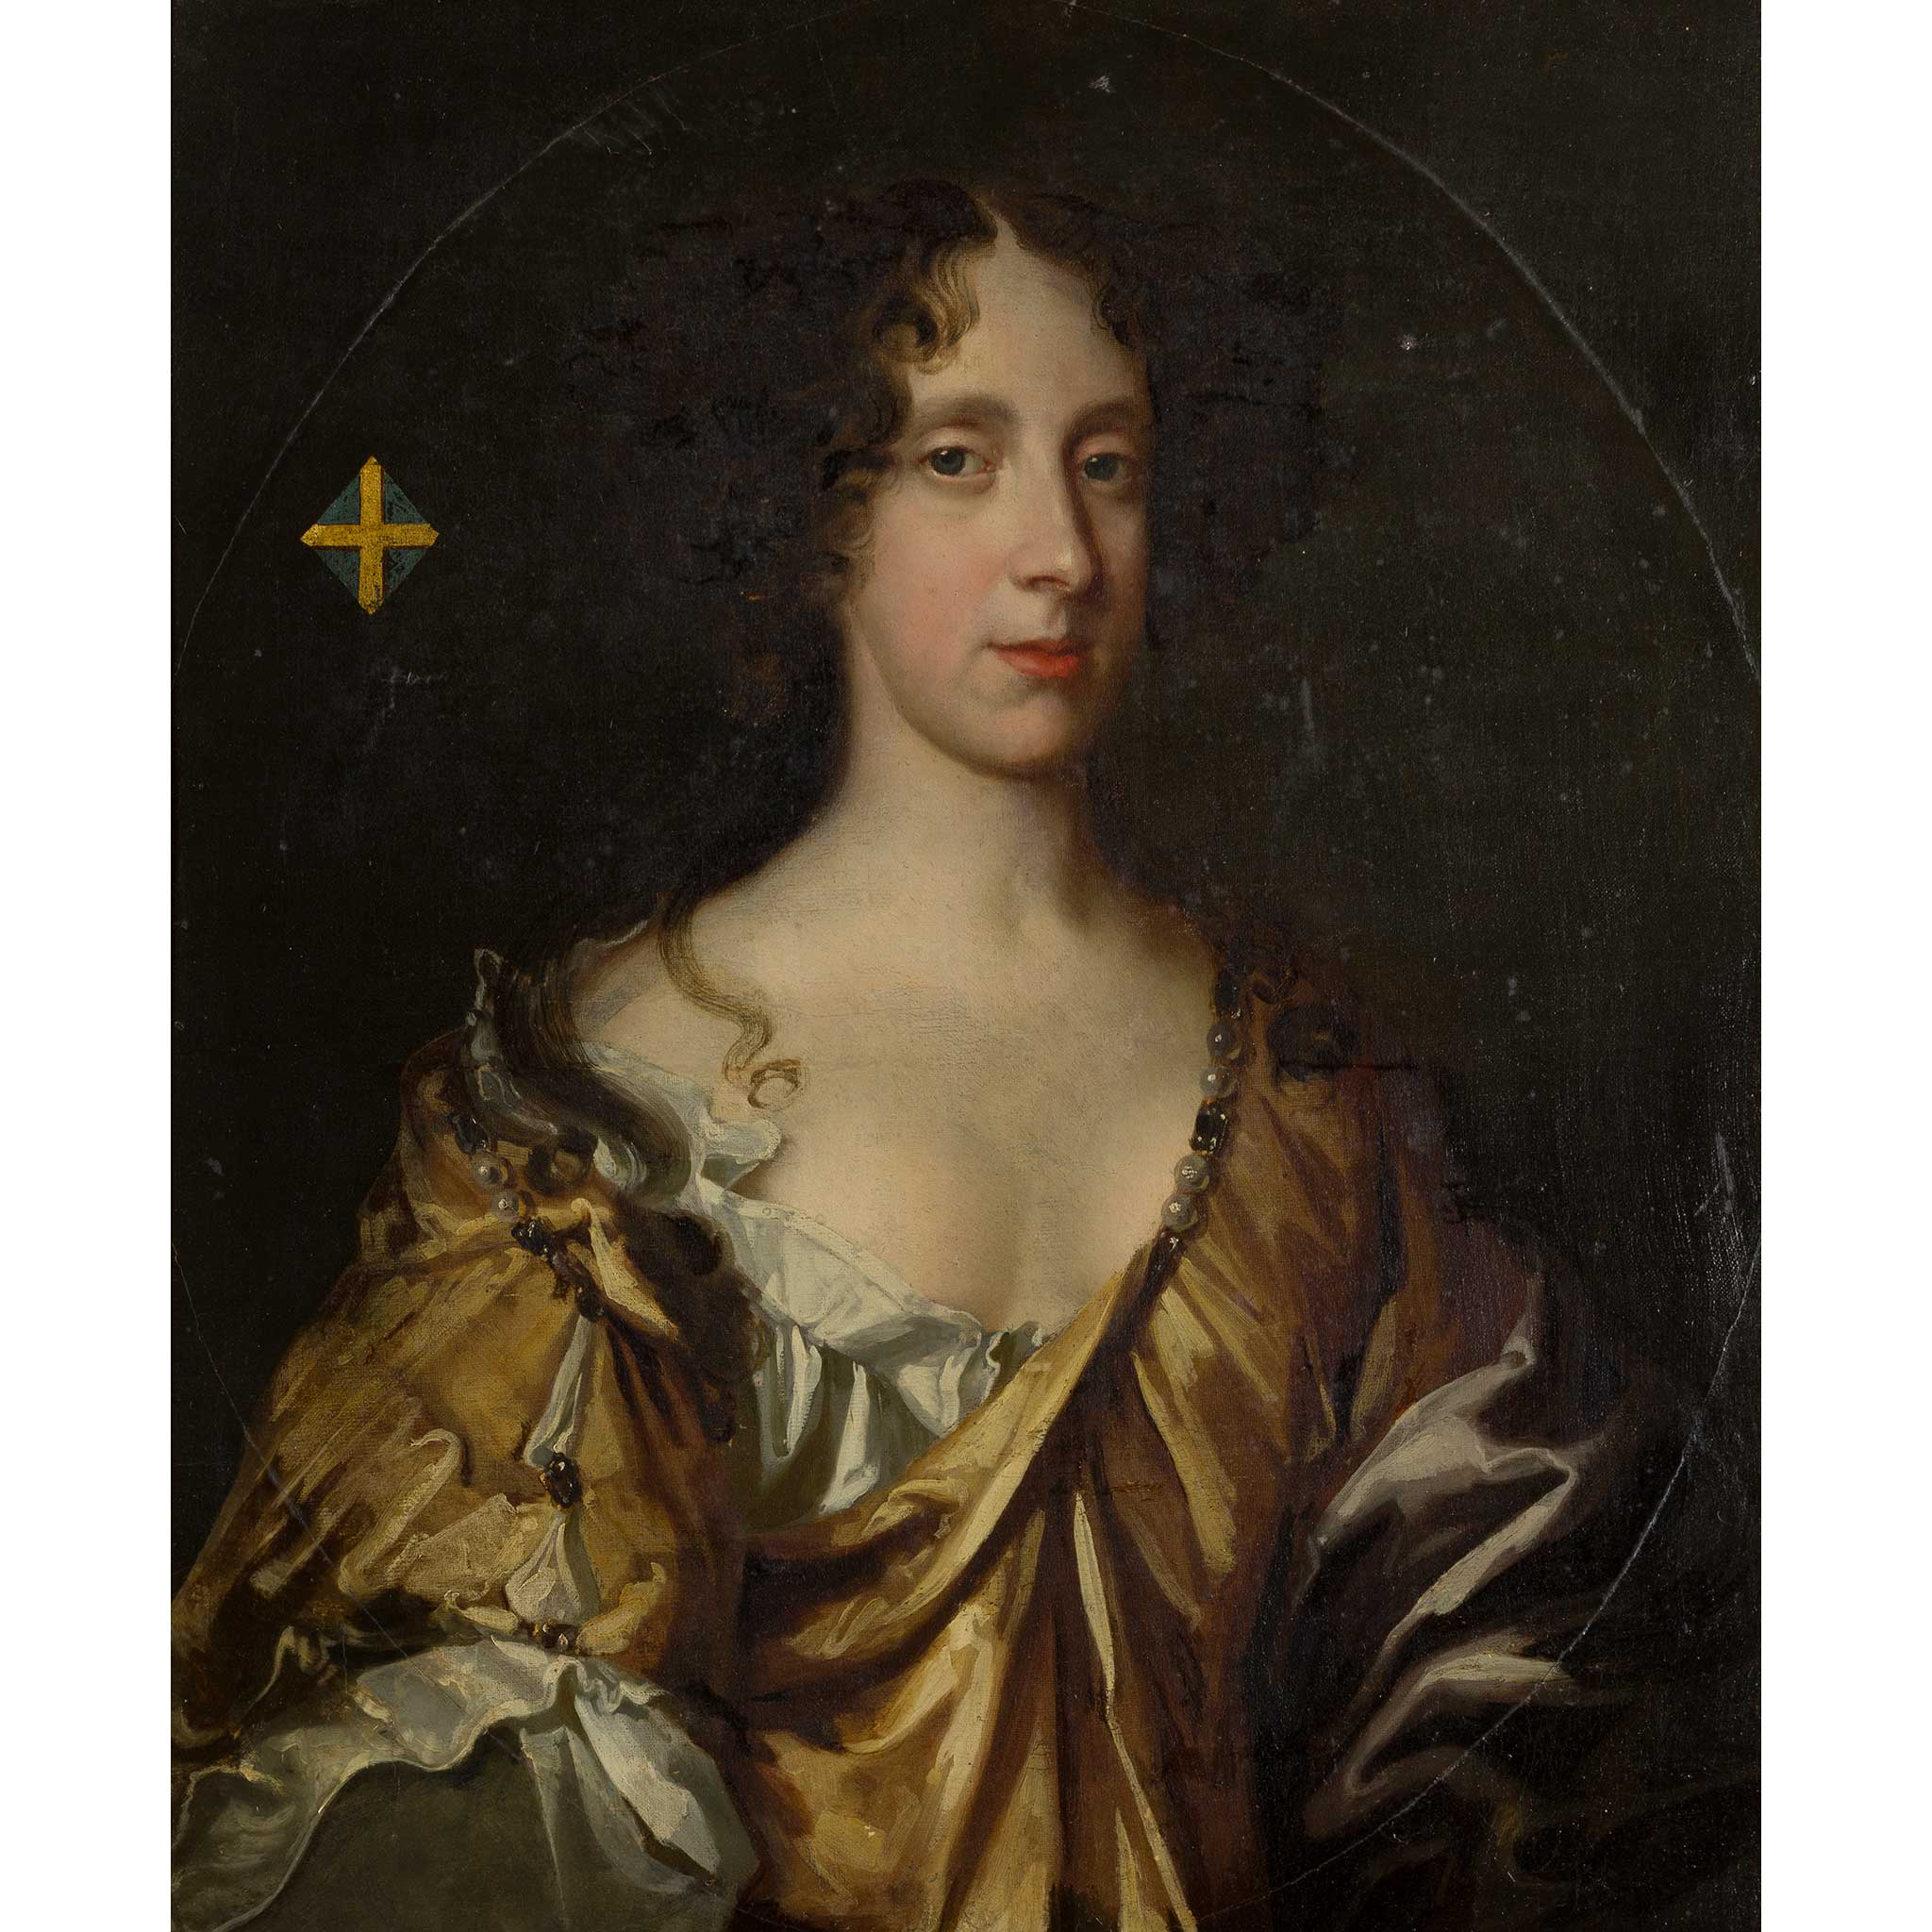 FOLLOWER OF SIR PETER LELY HALF LENGTH PORTRAIT OF THE DUCHESS OF CLEVELAND